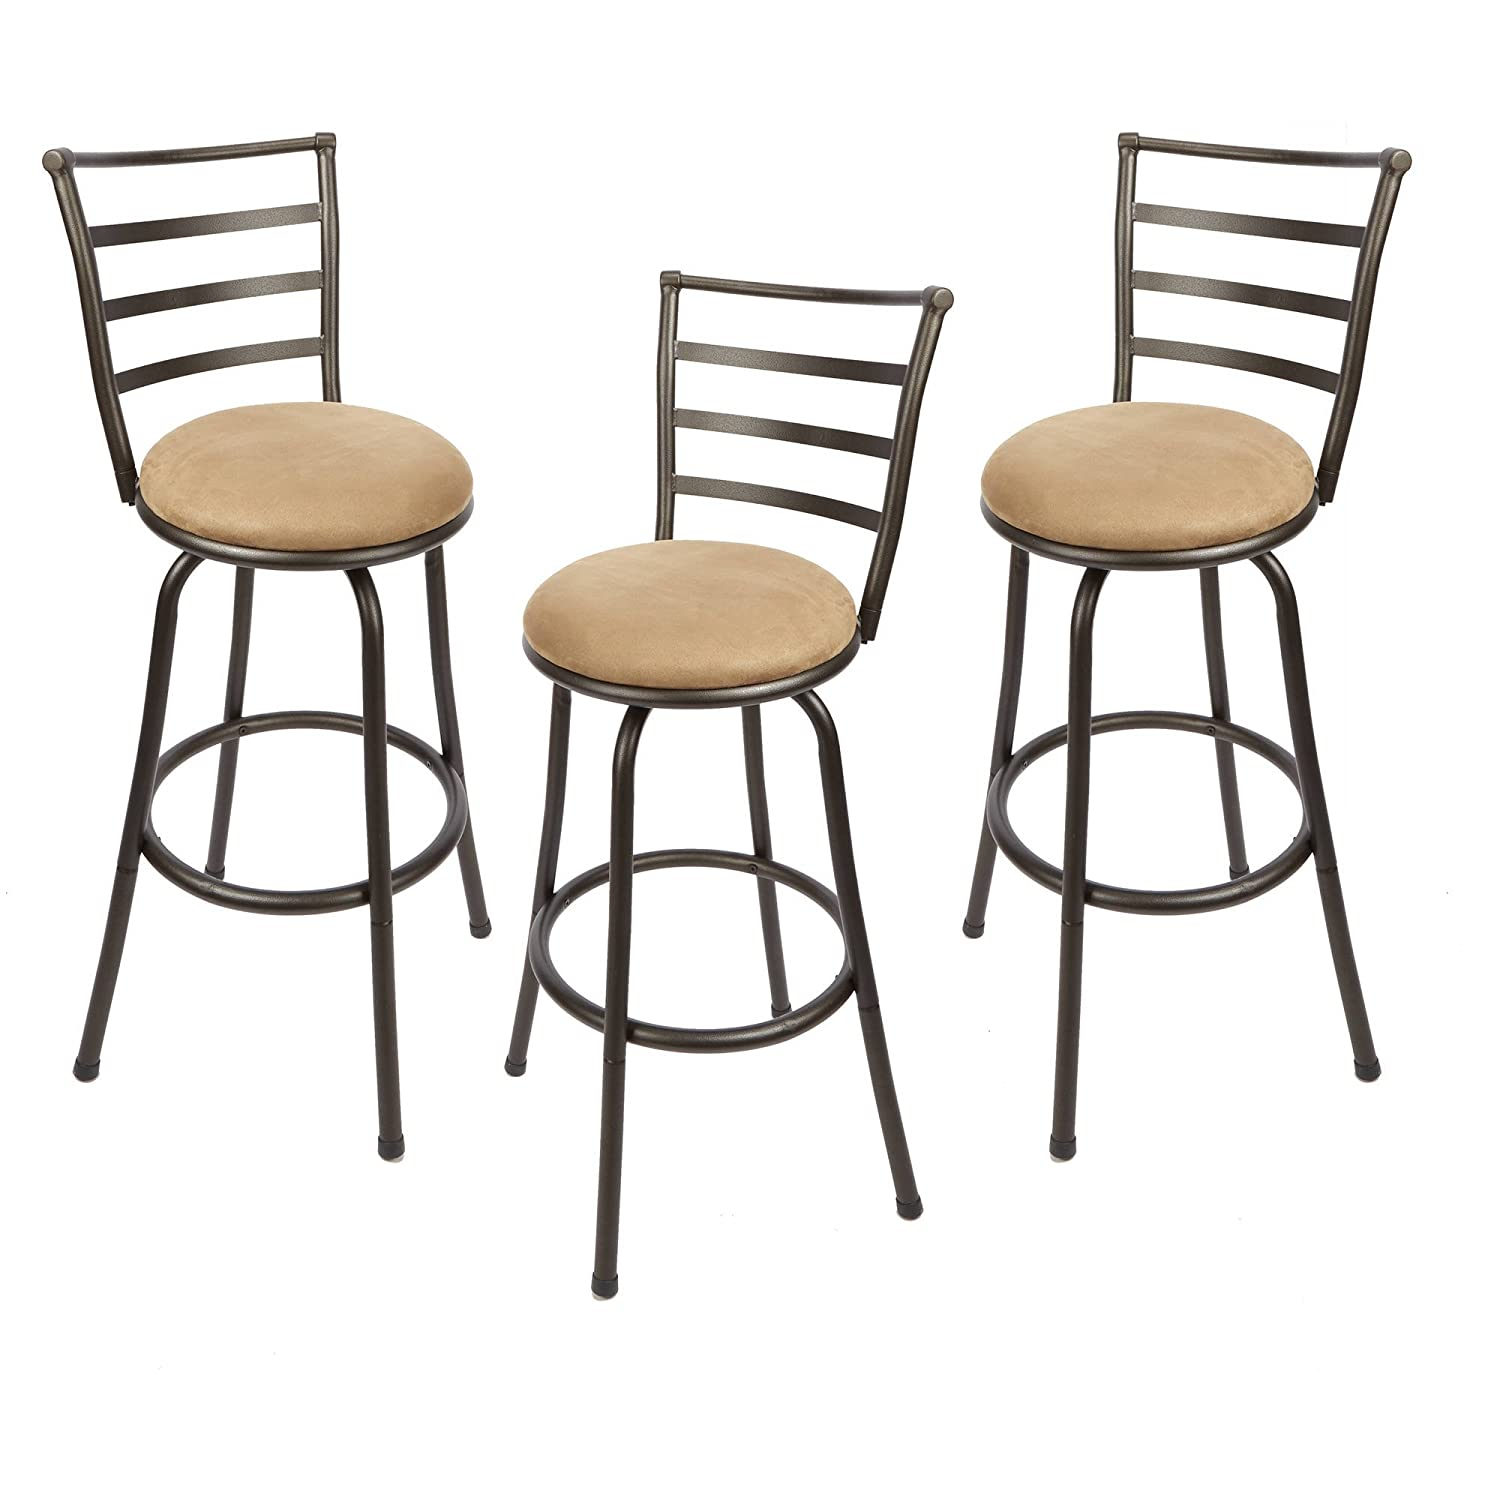 Adjustable-Height Swivel Barstool, Hammered Bronze Finish, Set of 3